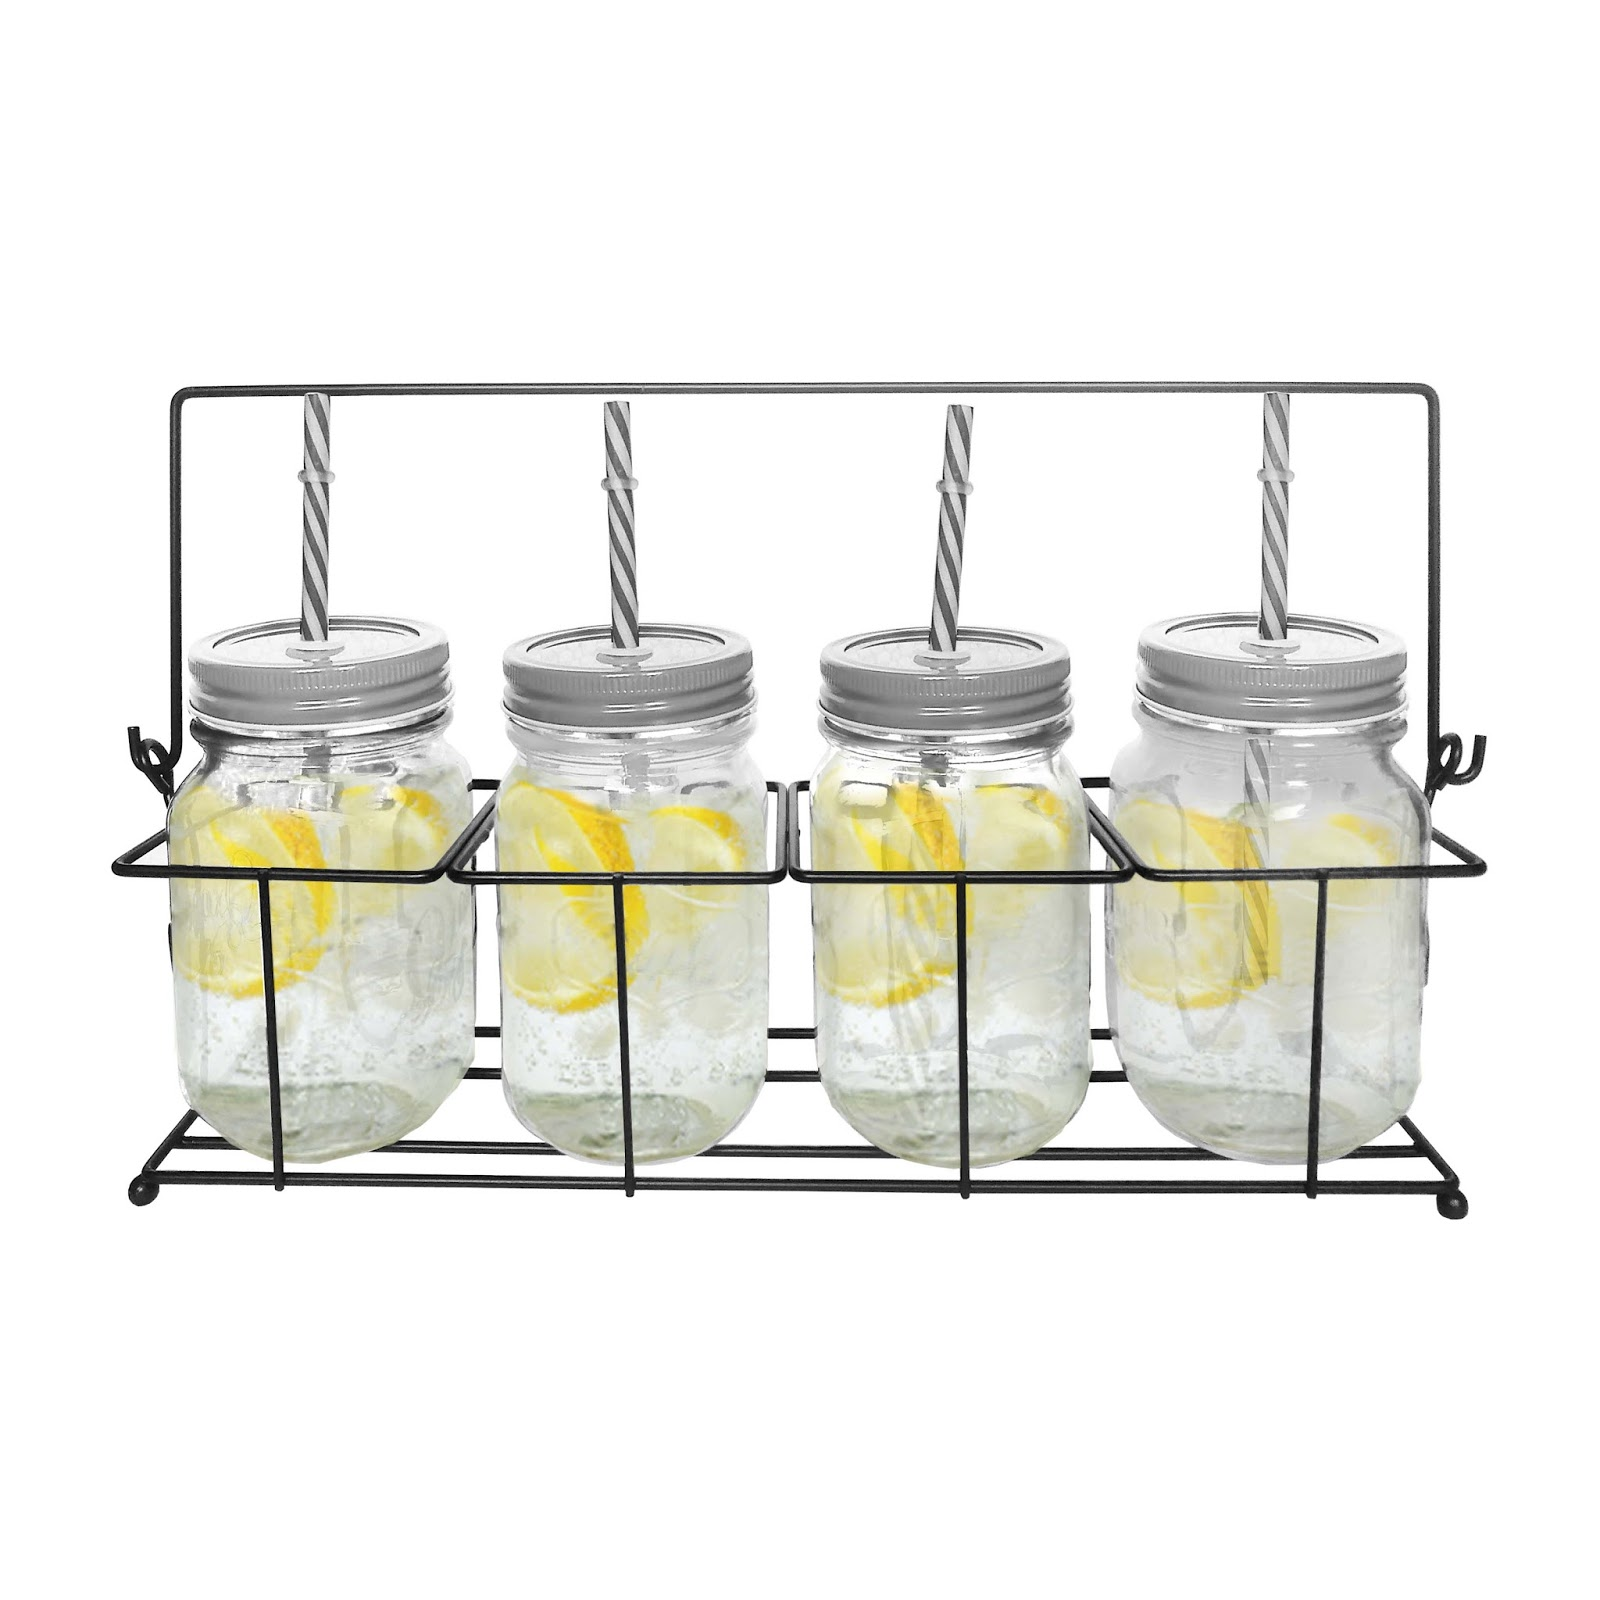 OX-020 4Pcs Classic Mason Mug Oxone with Rack